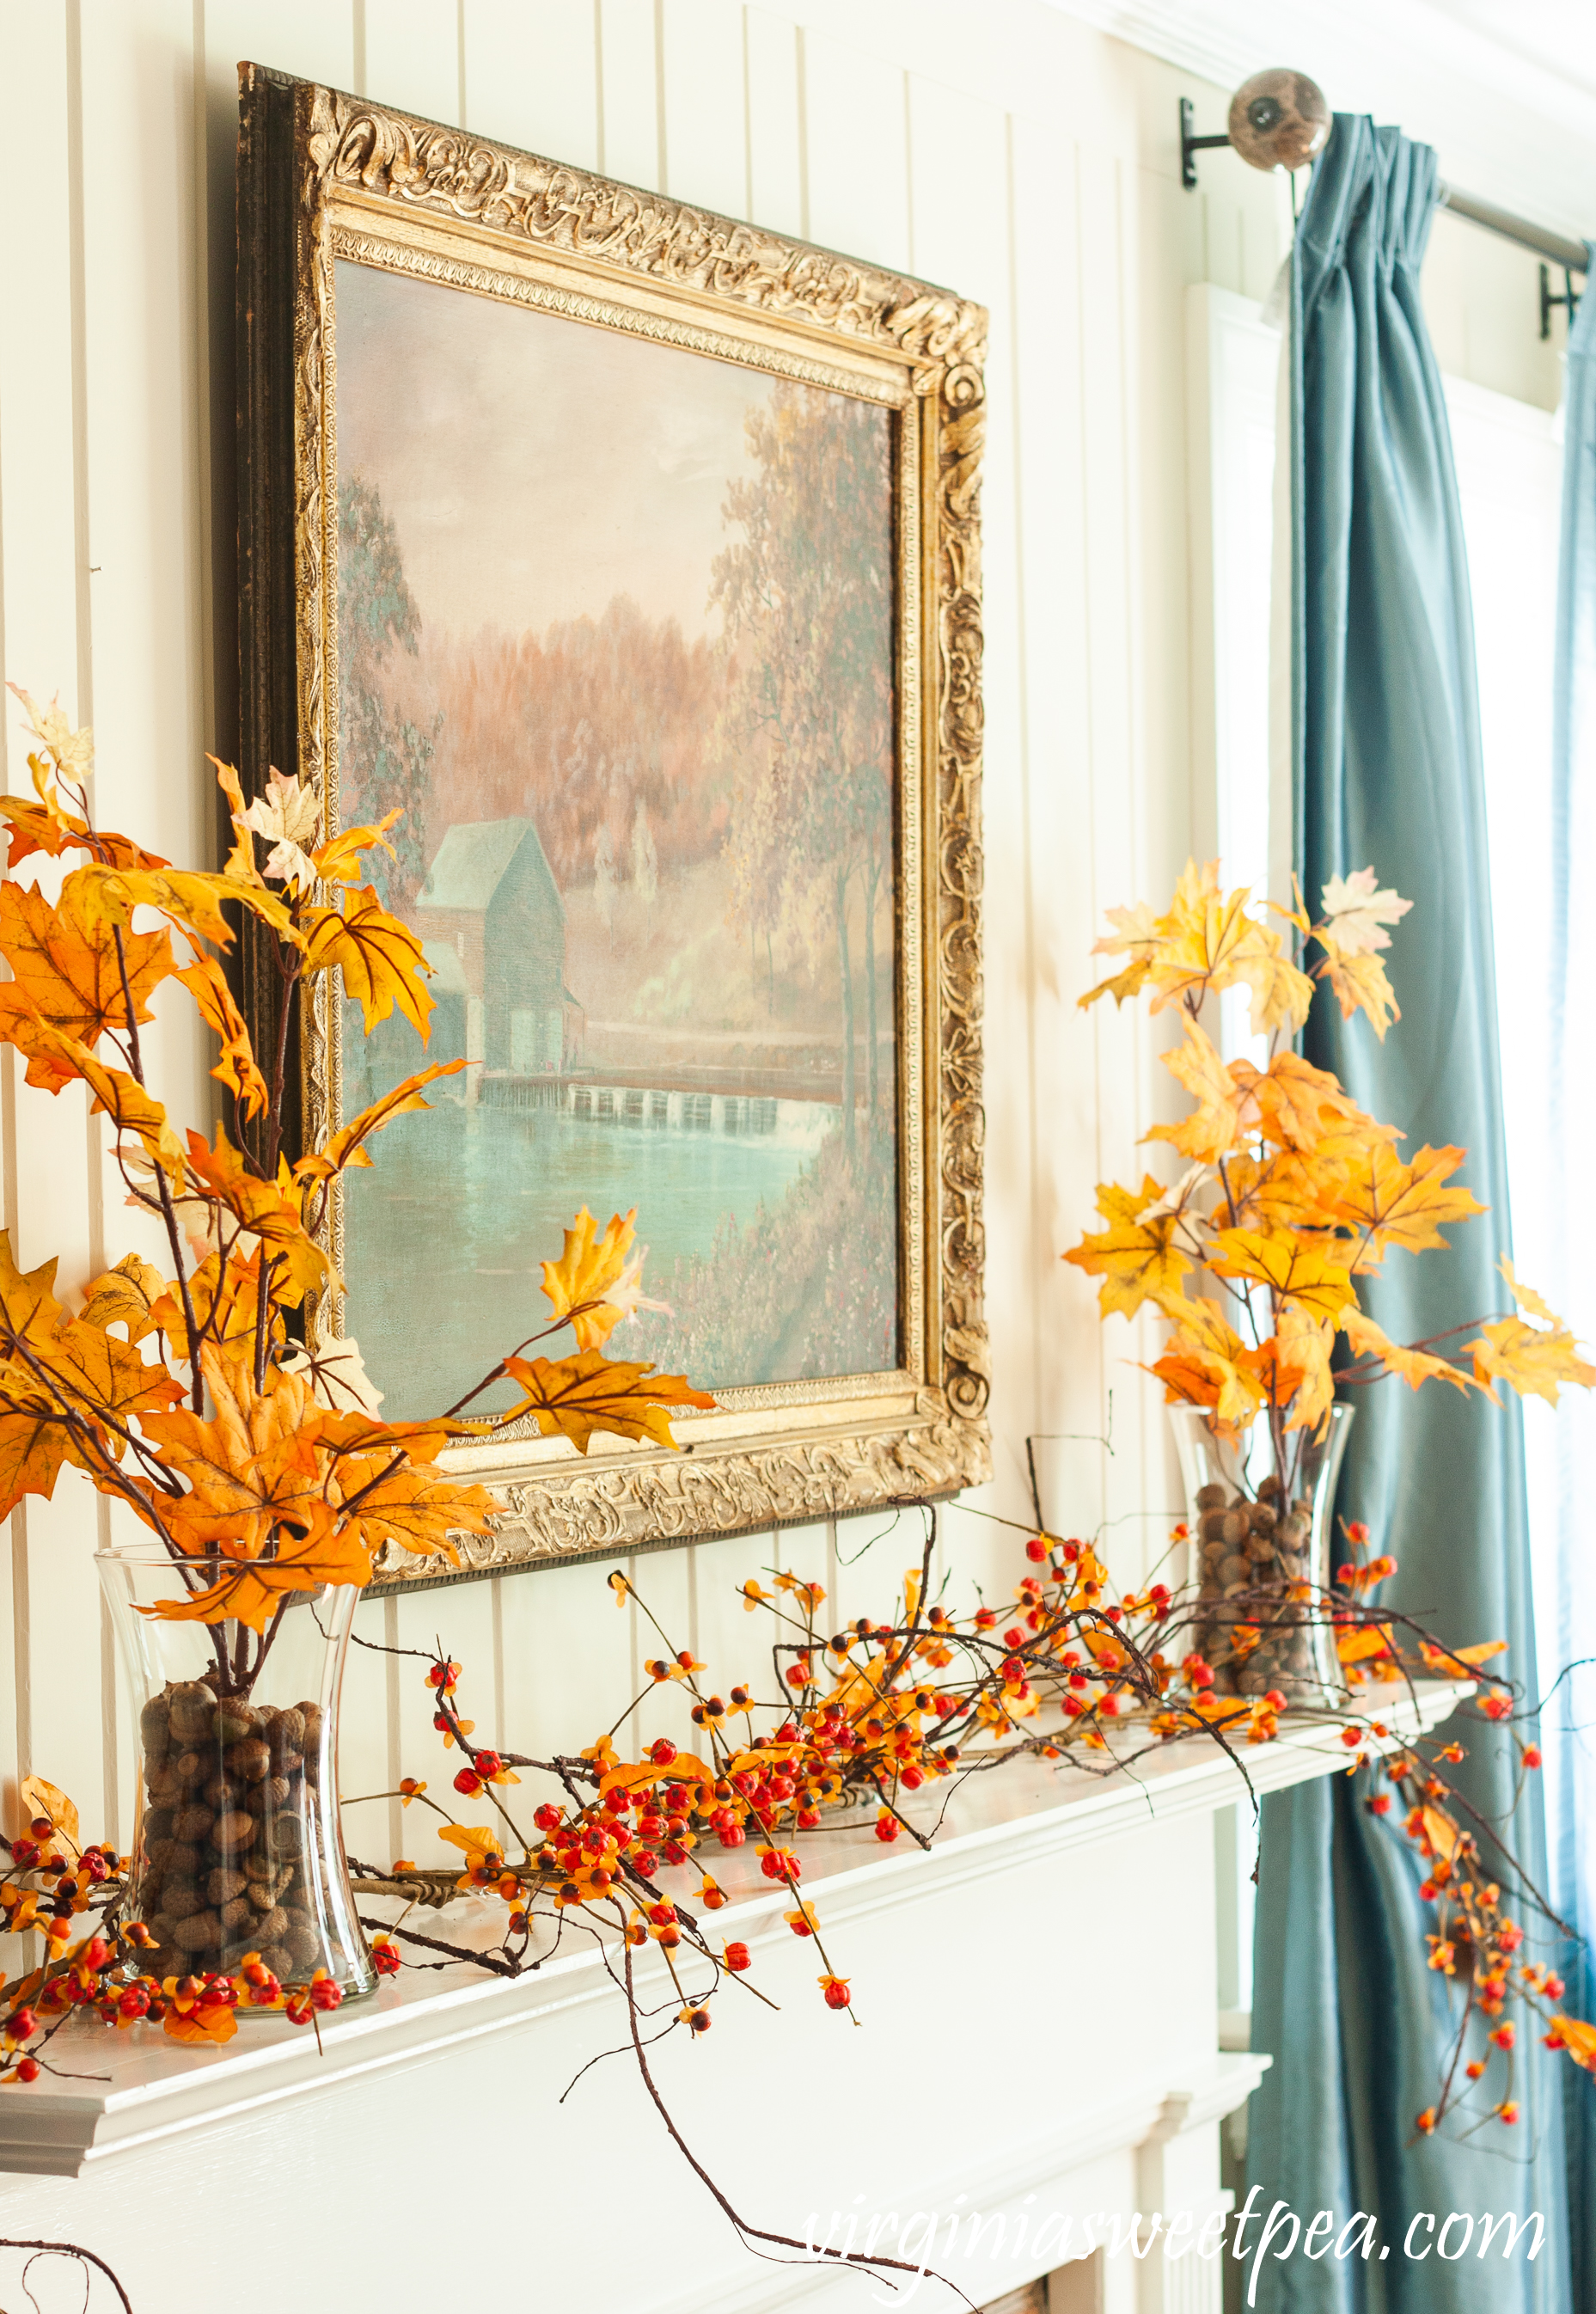 Traditional Fall Mantel - A mantel decorated with a painting of a mill in Sussex County, NJ along with fall foliage and bittersweet.